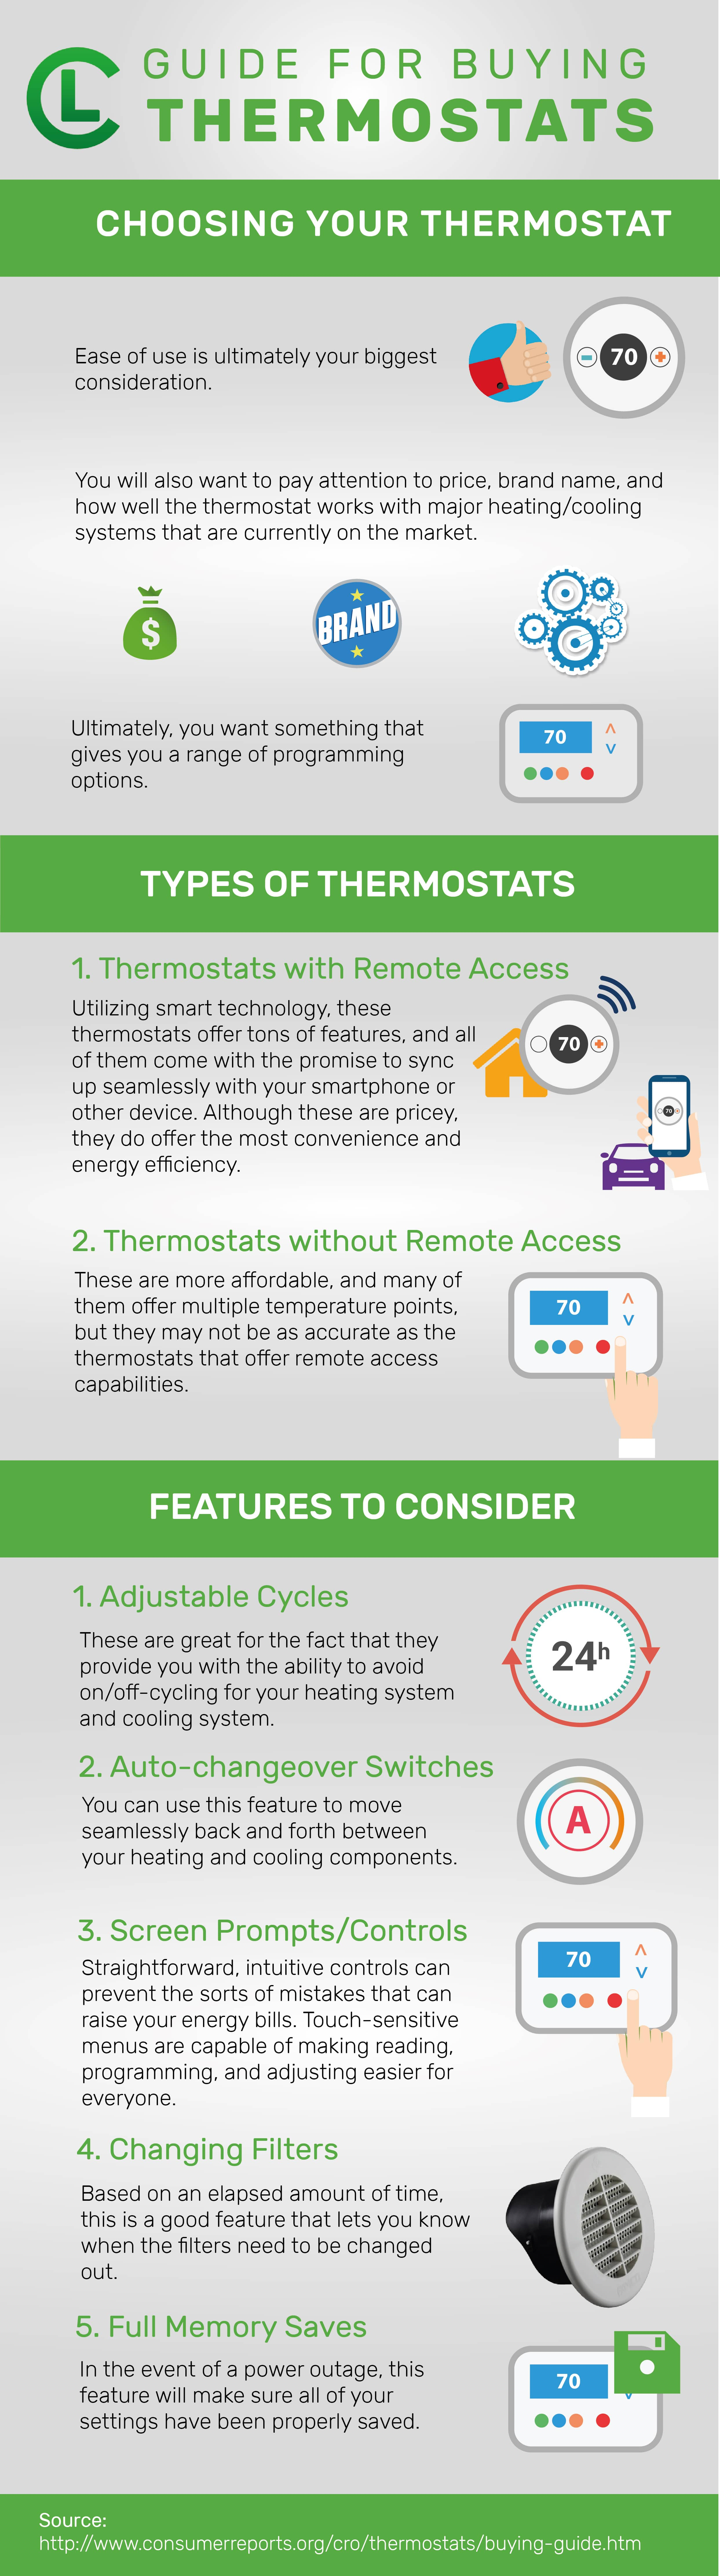 Guide For Buying Thermostats Infographic